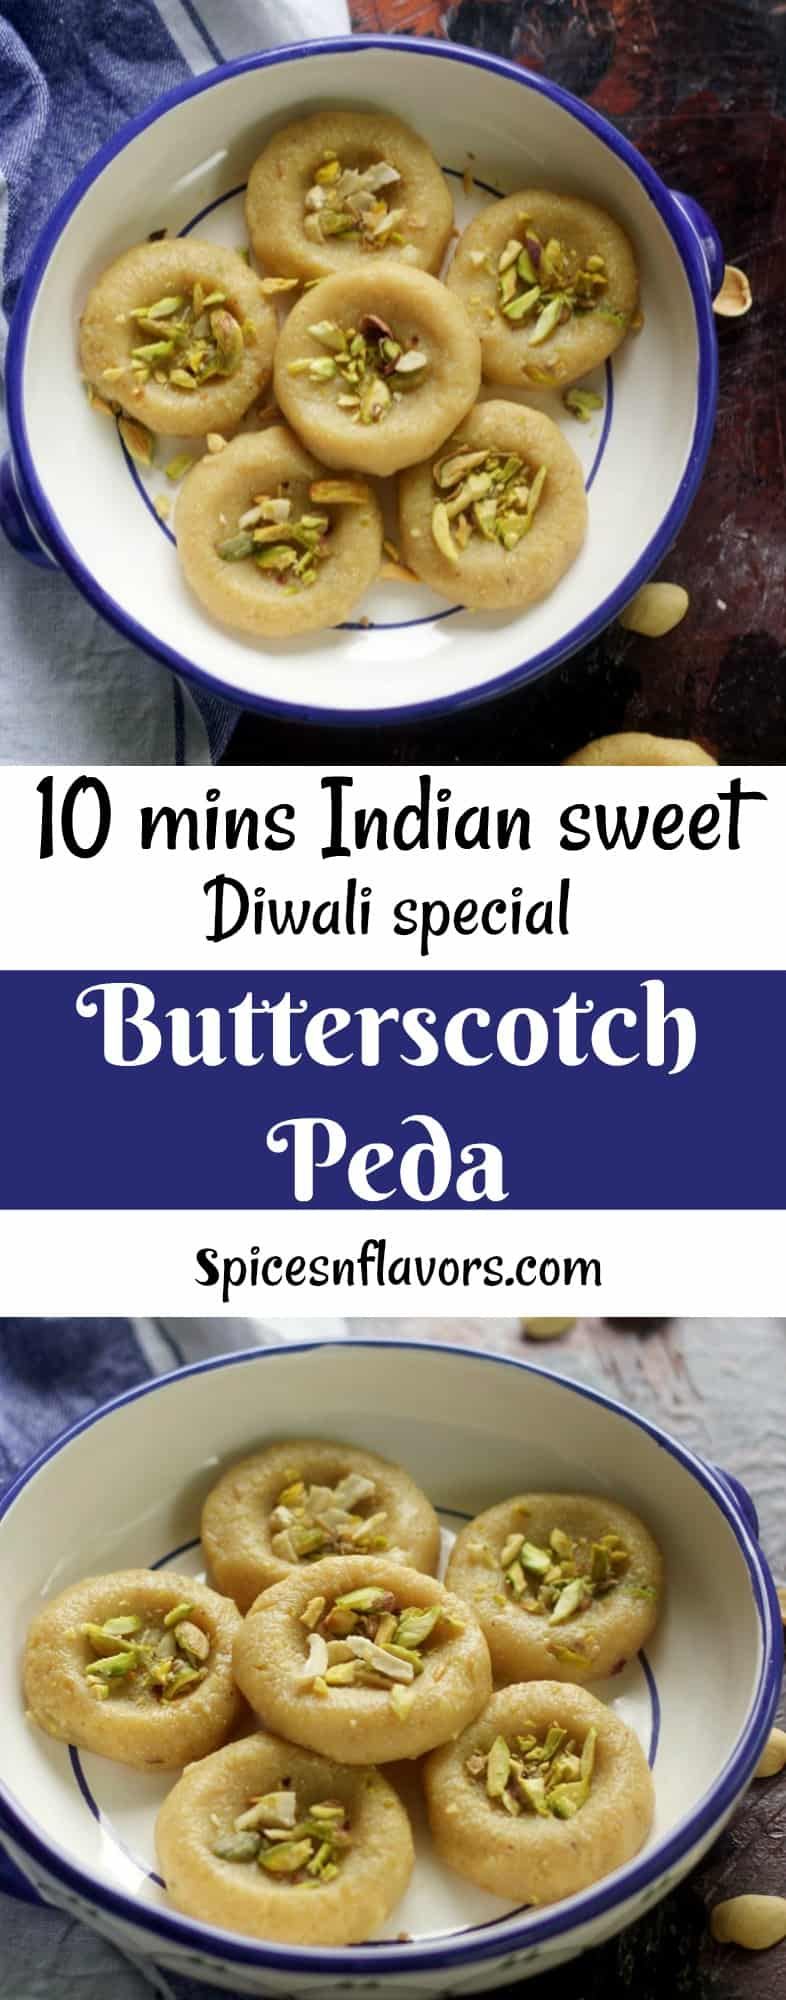 butterscotch peda recipe diwali peda recipe indian sweets diwali recipes festival recipe indian mithai kesar peda chocolate peda instant peda food photography #diwali #pinterest #sweets